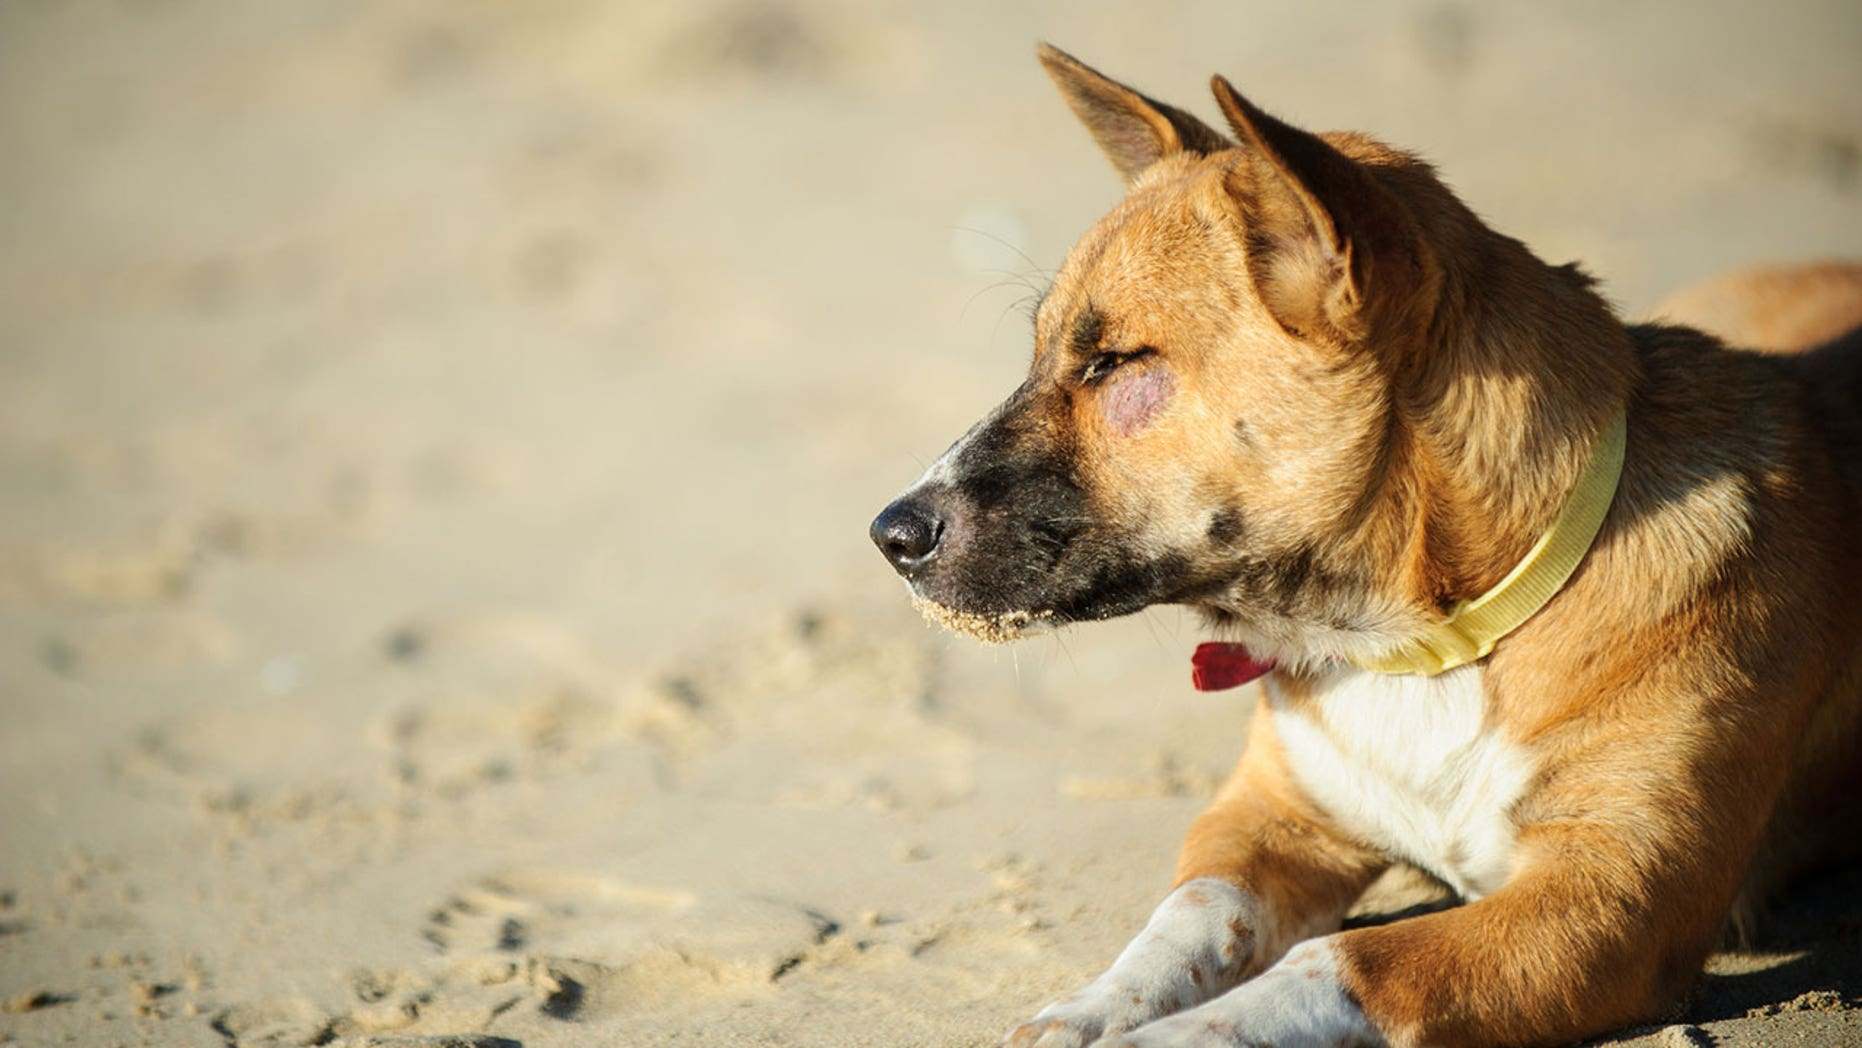 Certain vendors in Bali have been selling beachgoers dog meat, according to an Australian news outlet.